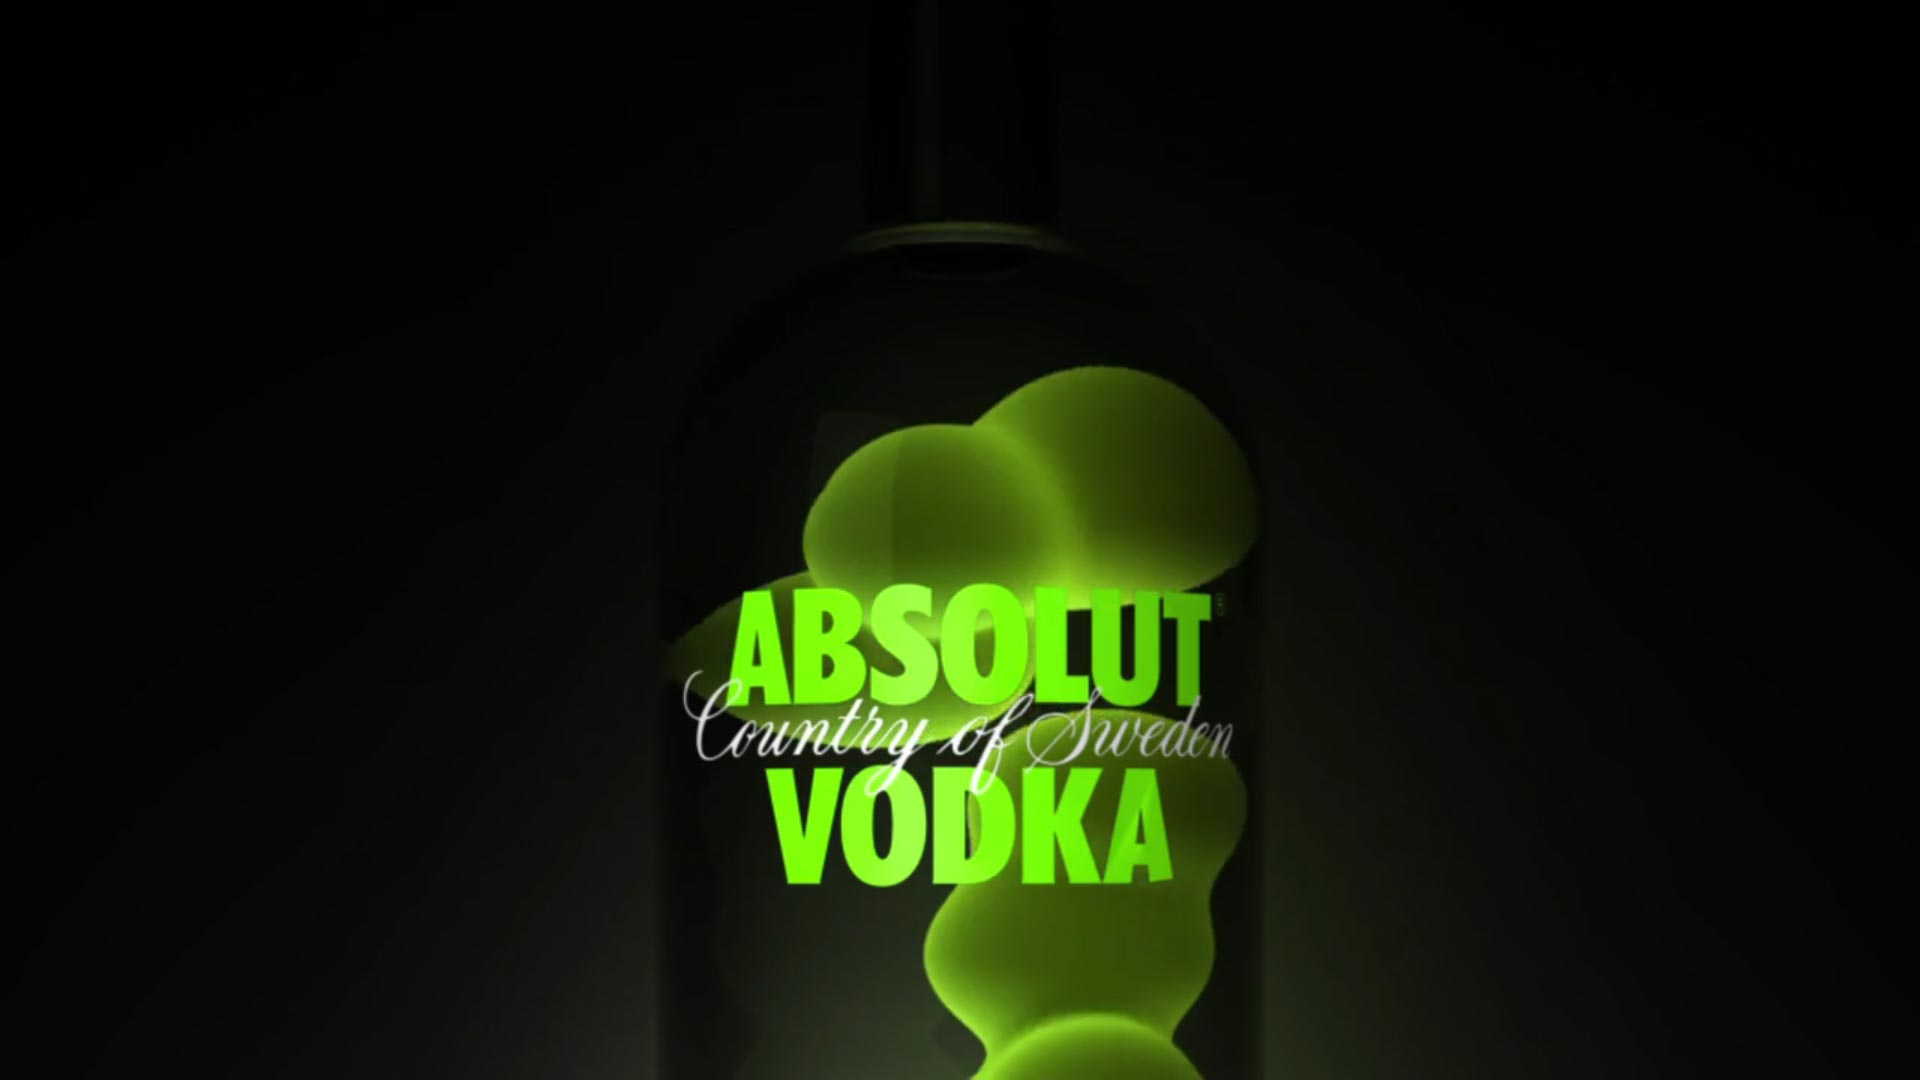 Wallpaper iphone vodka - Absolut Vodka Wallpapers Group 61